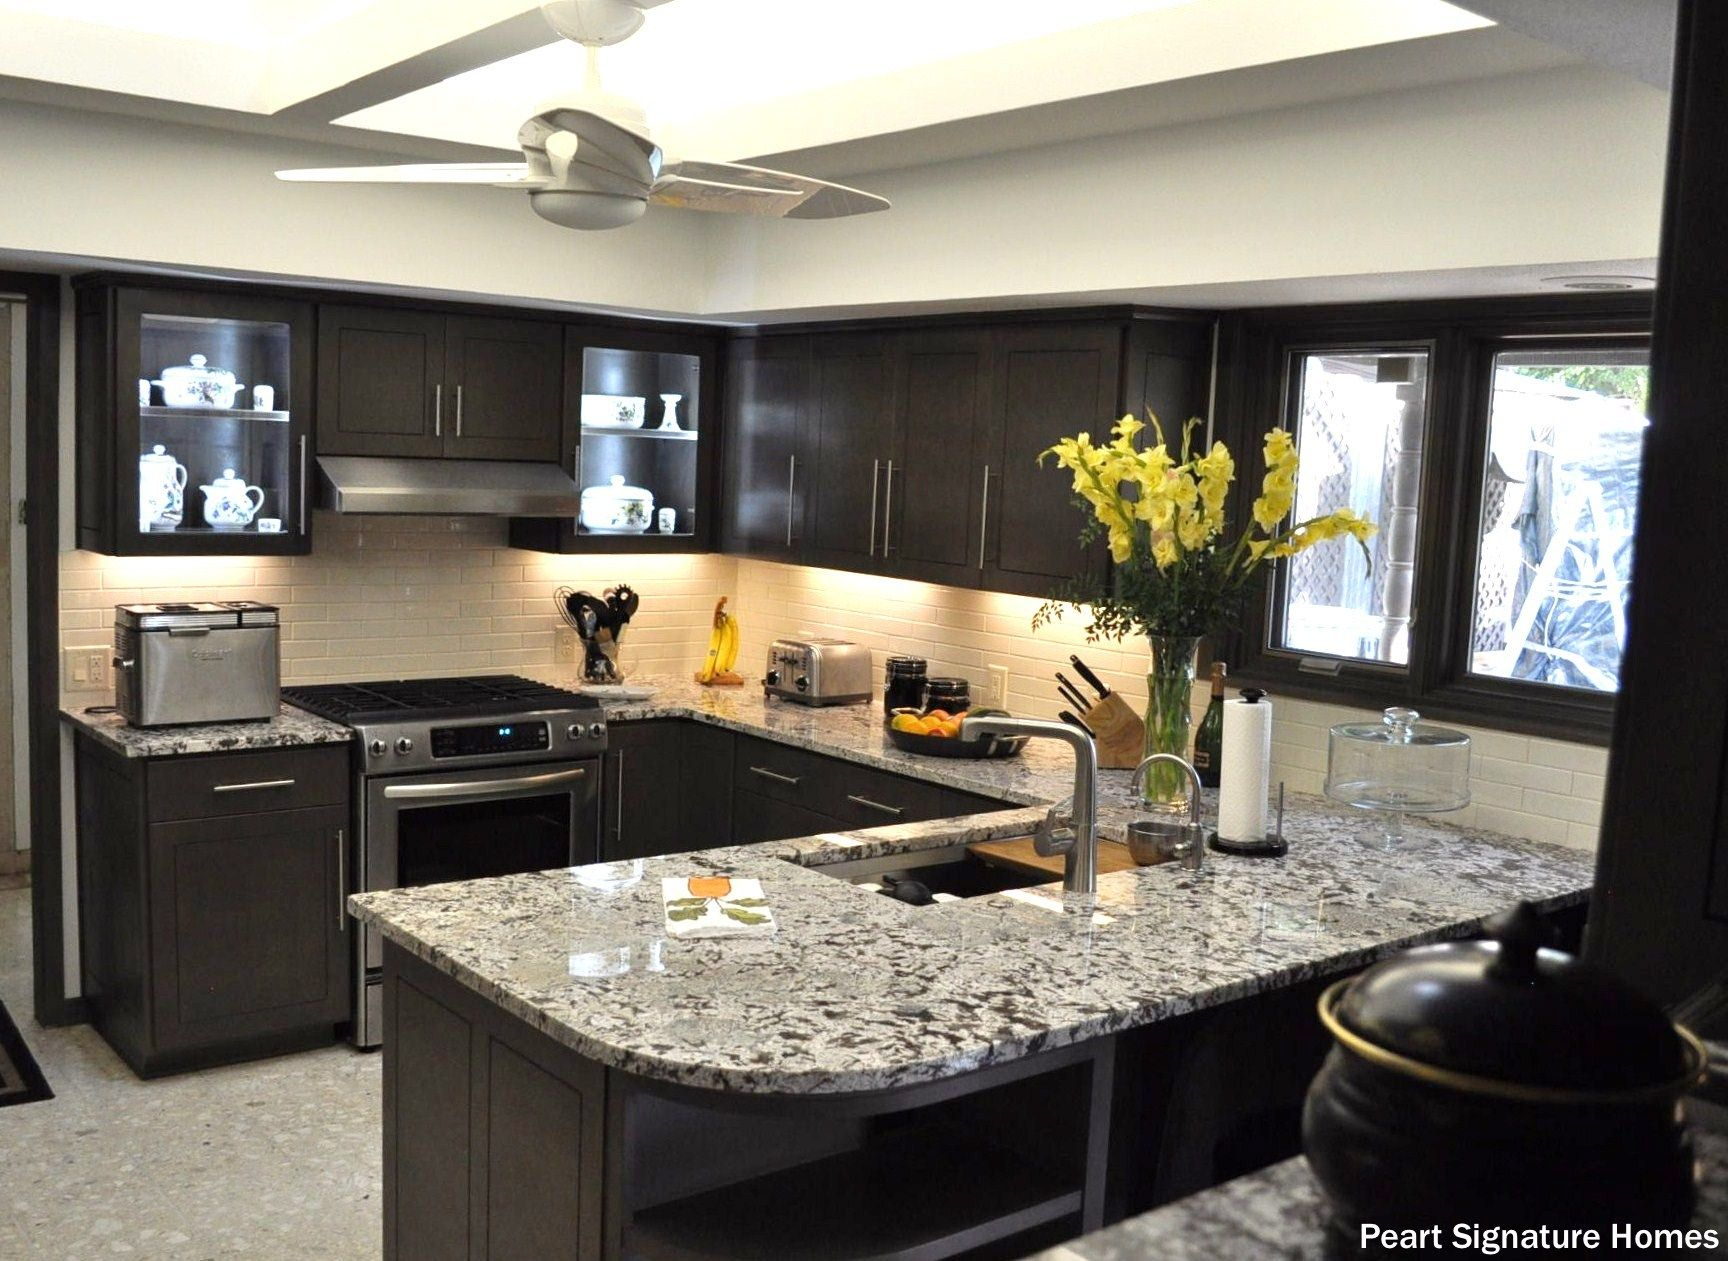 Basic Bathroom Remodel With An Open Skylight, Granite Counters, White  Backsplash And Stained,. Kitchen Remodel CostKitchen ...